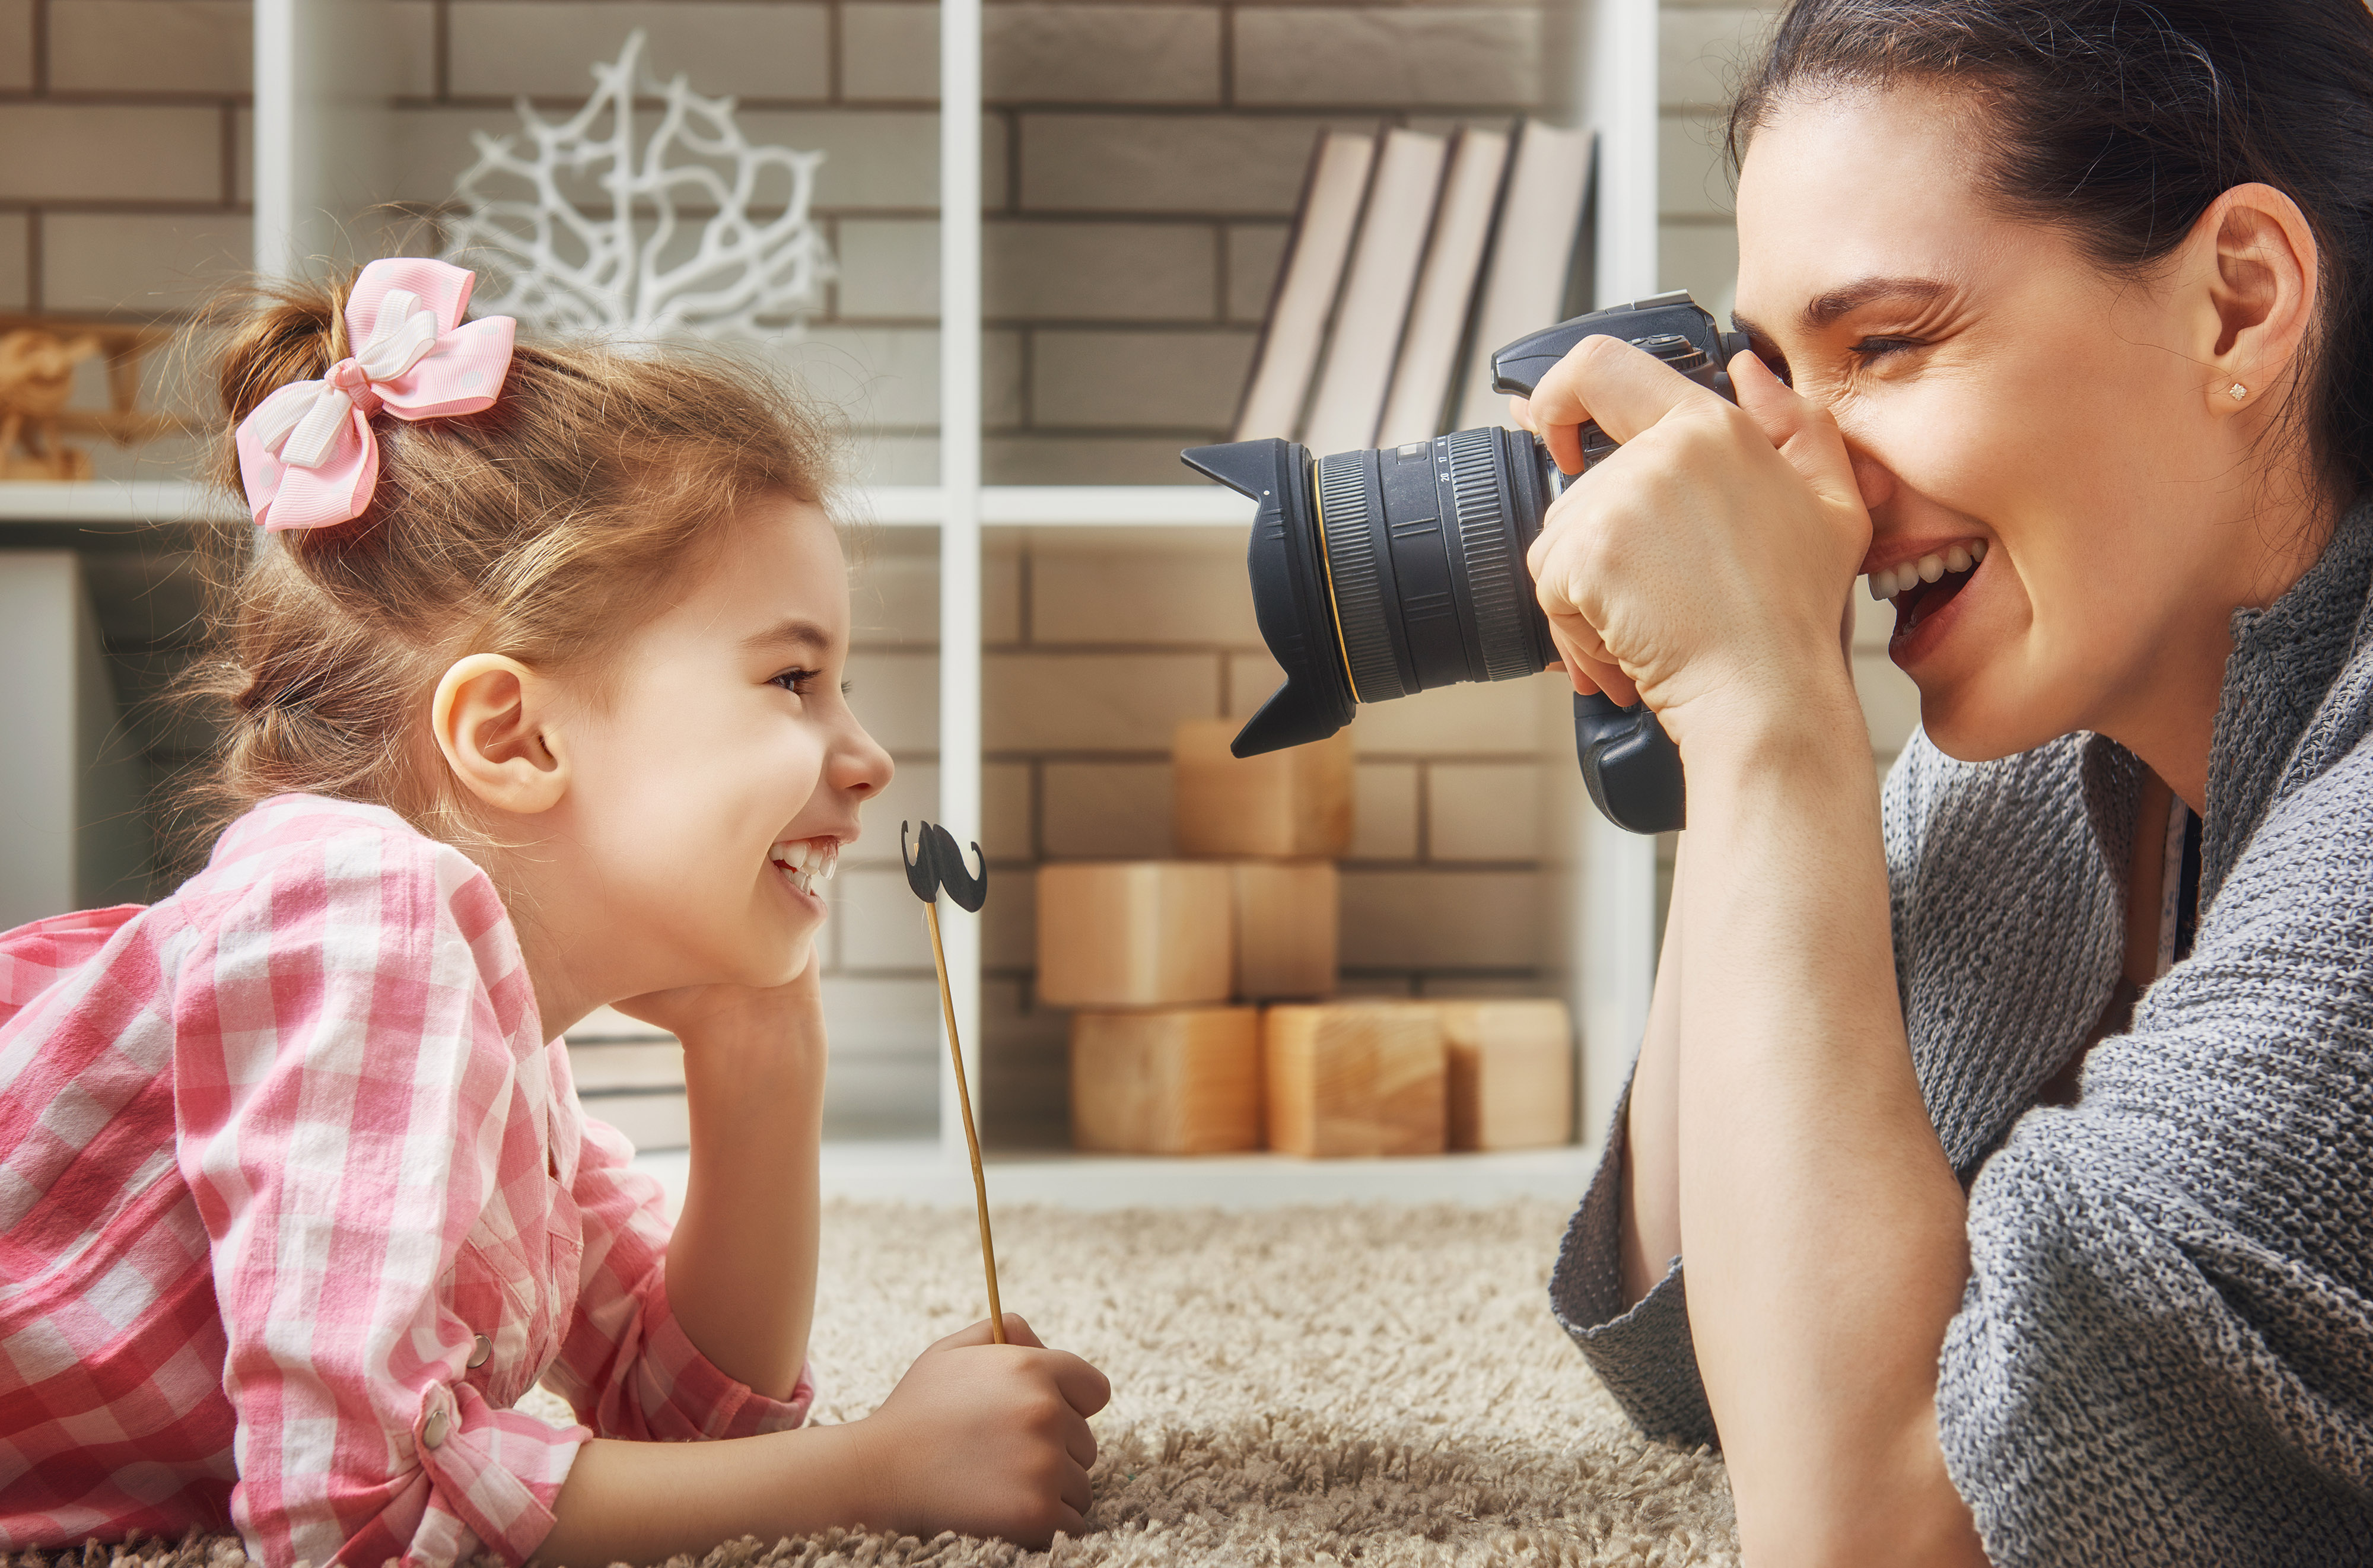 mother photograph child getty